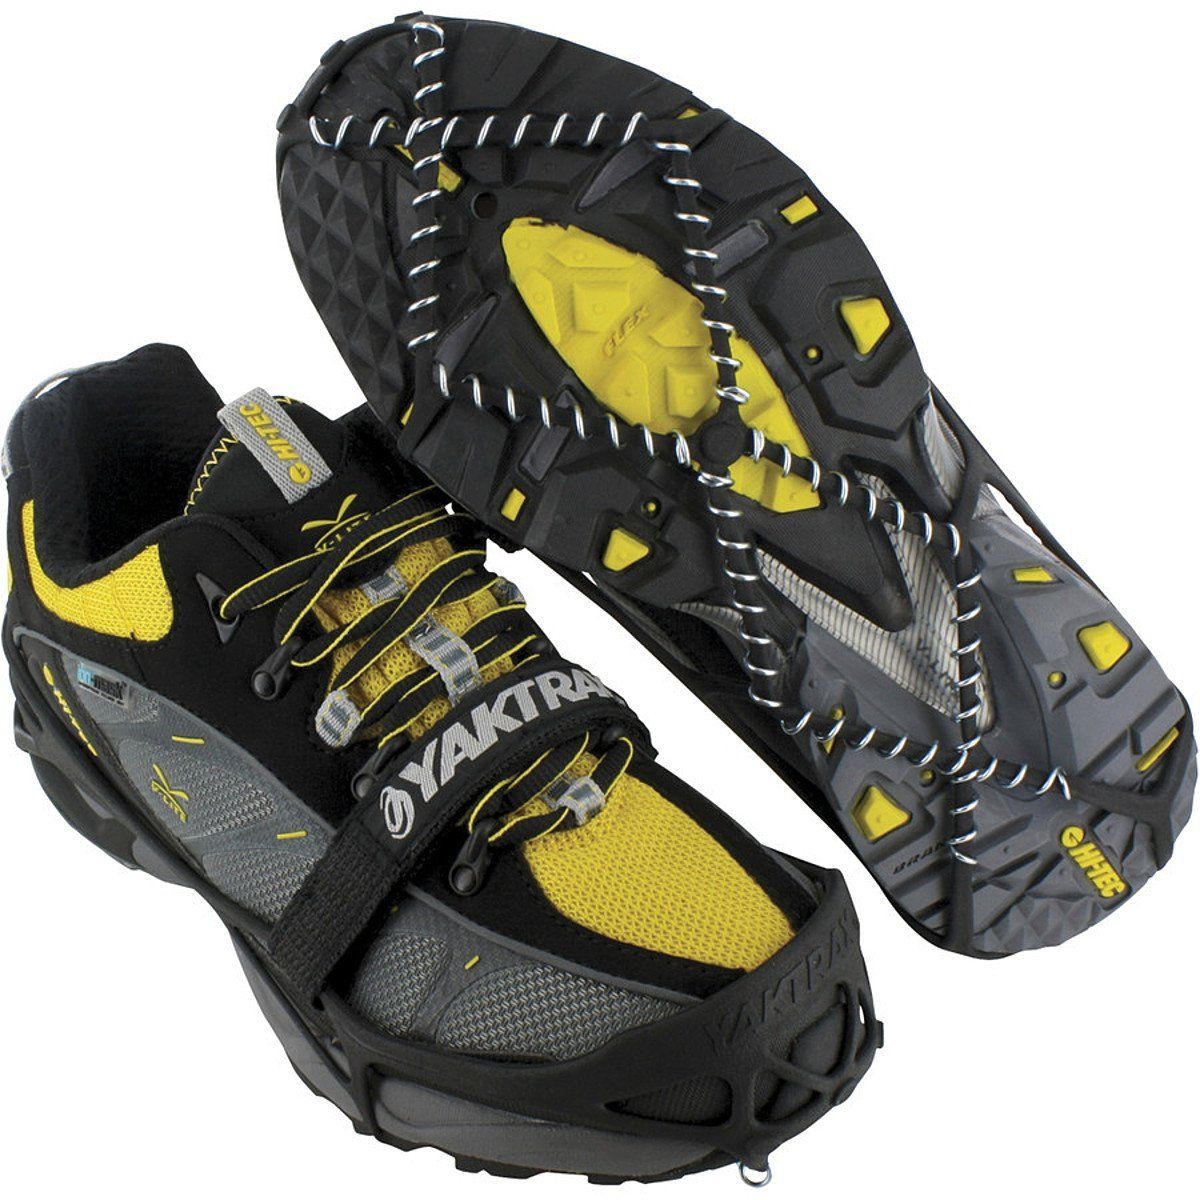 Just bought myself a pair of Yaktrax Pro Traction Cleats